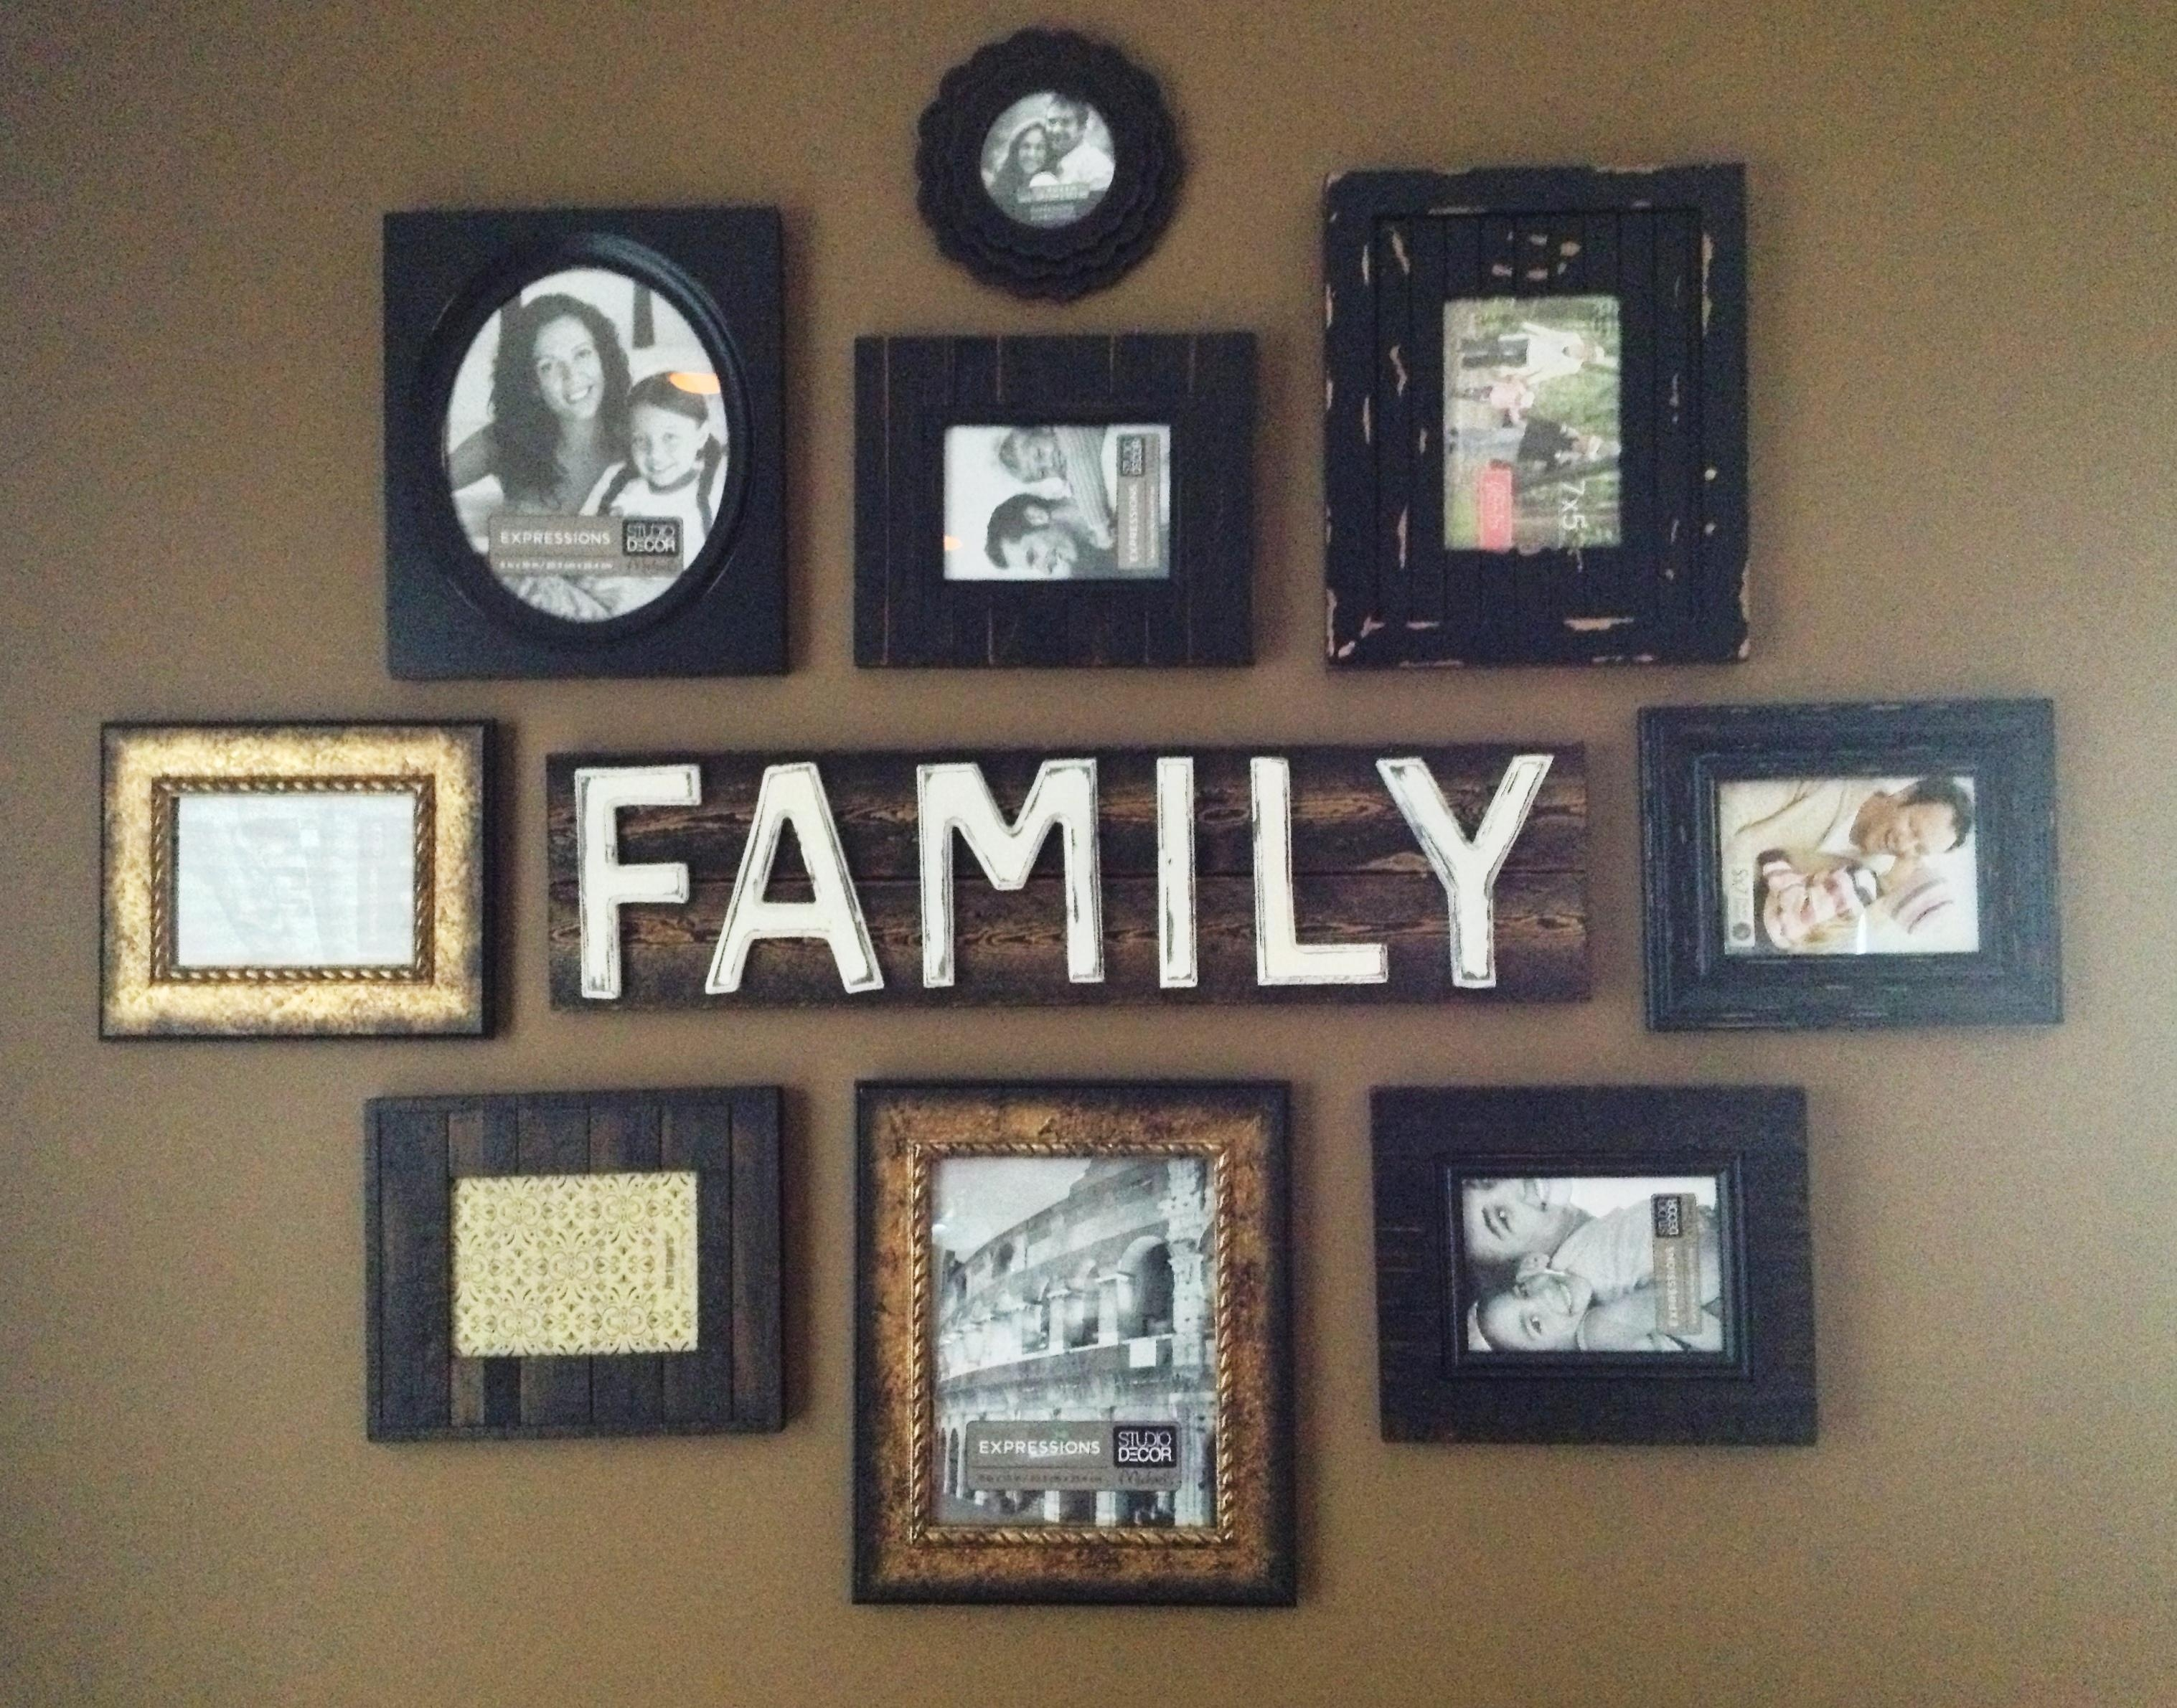 Family Wall Art Picture Frames | Wallartideas Intended For Family Wall Art Picture Frames (View 3 of 20)